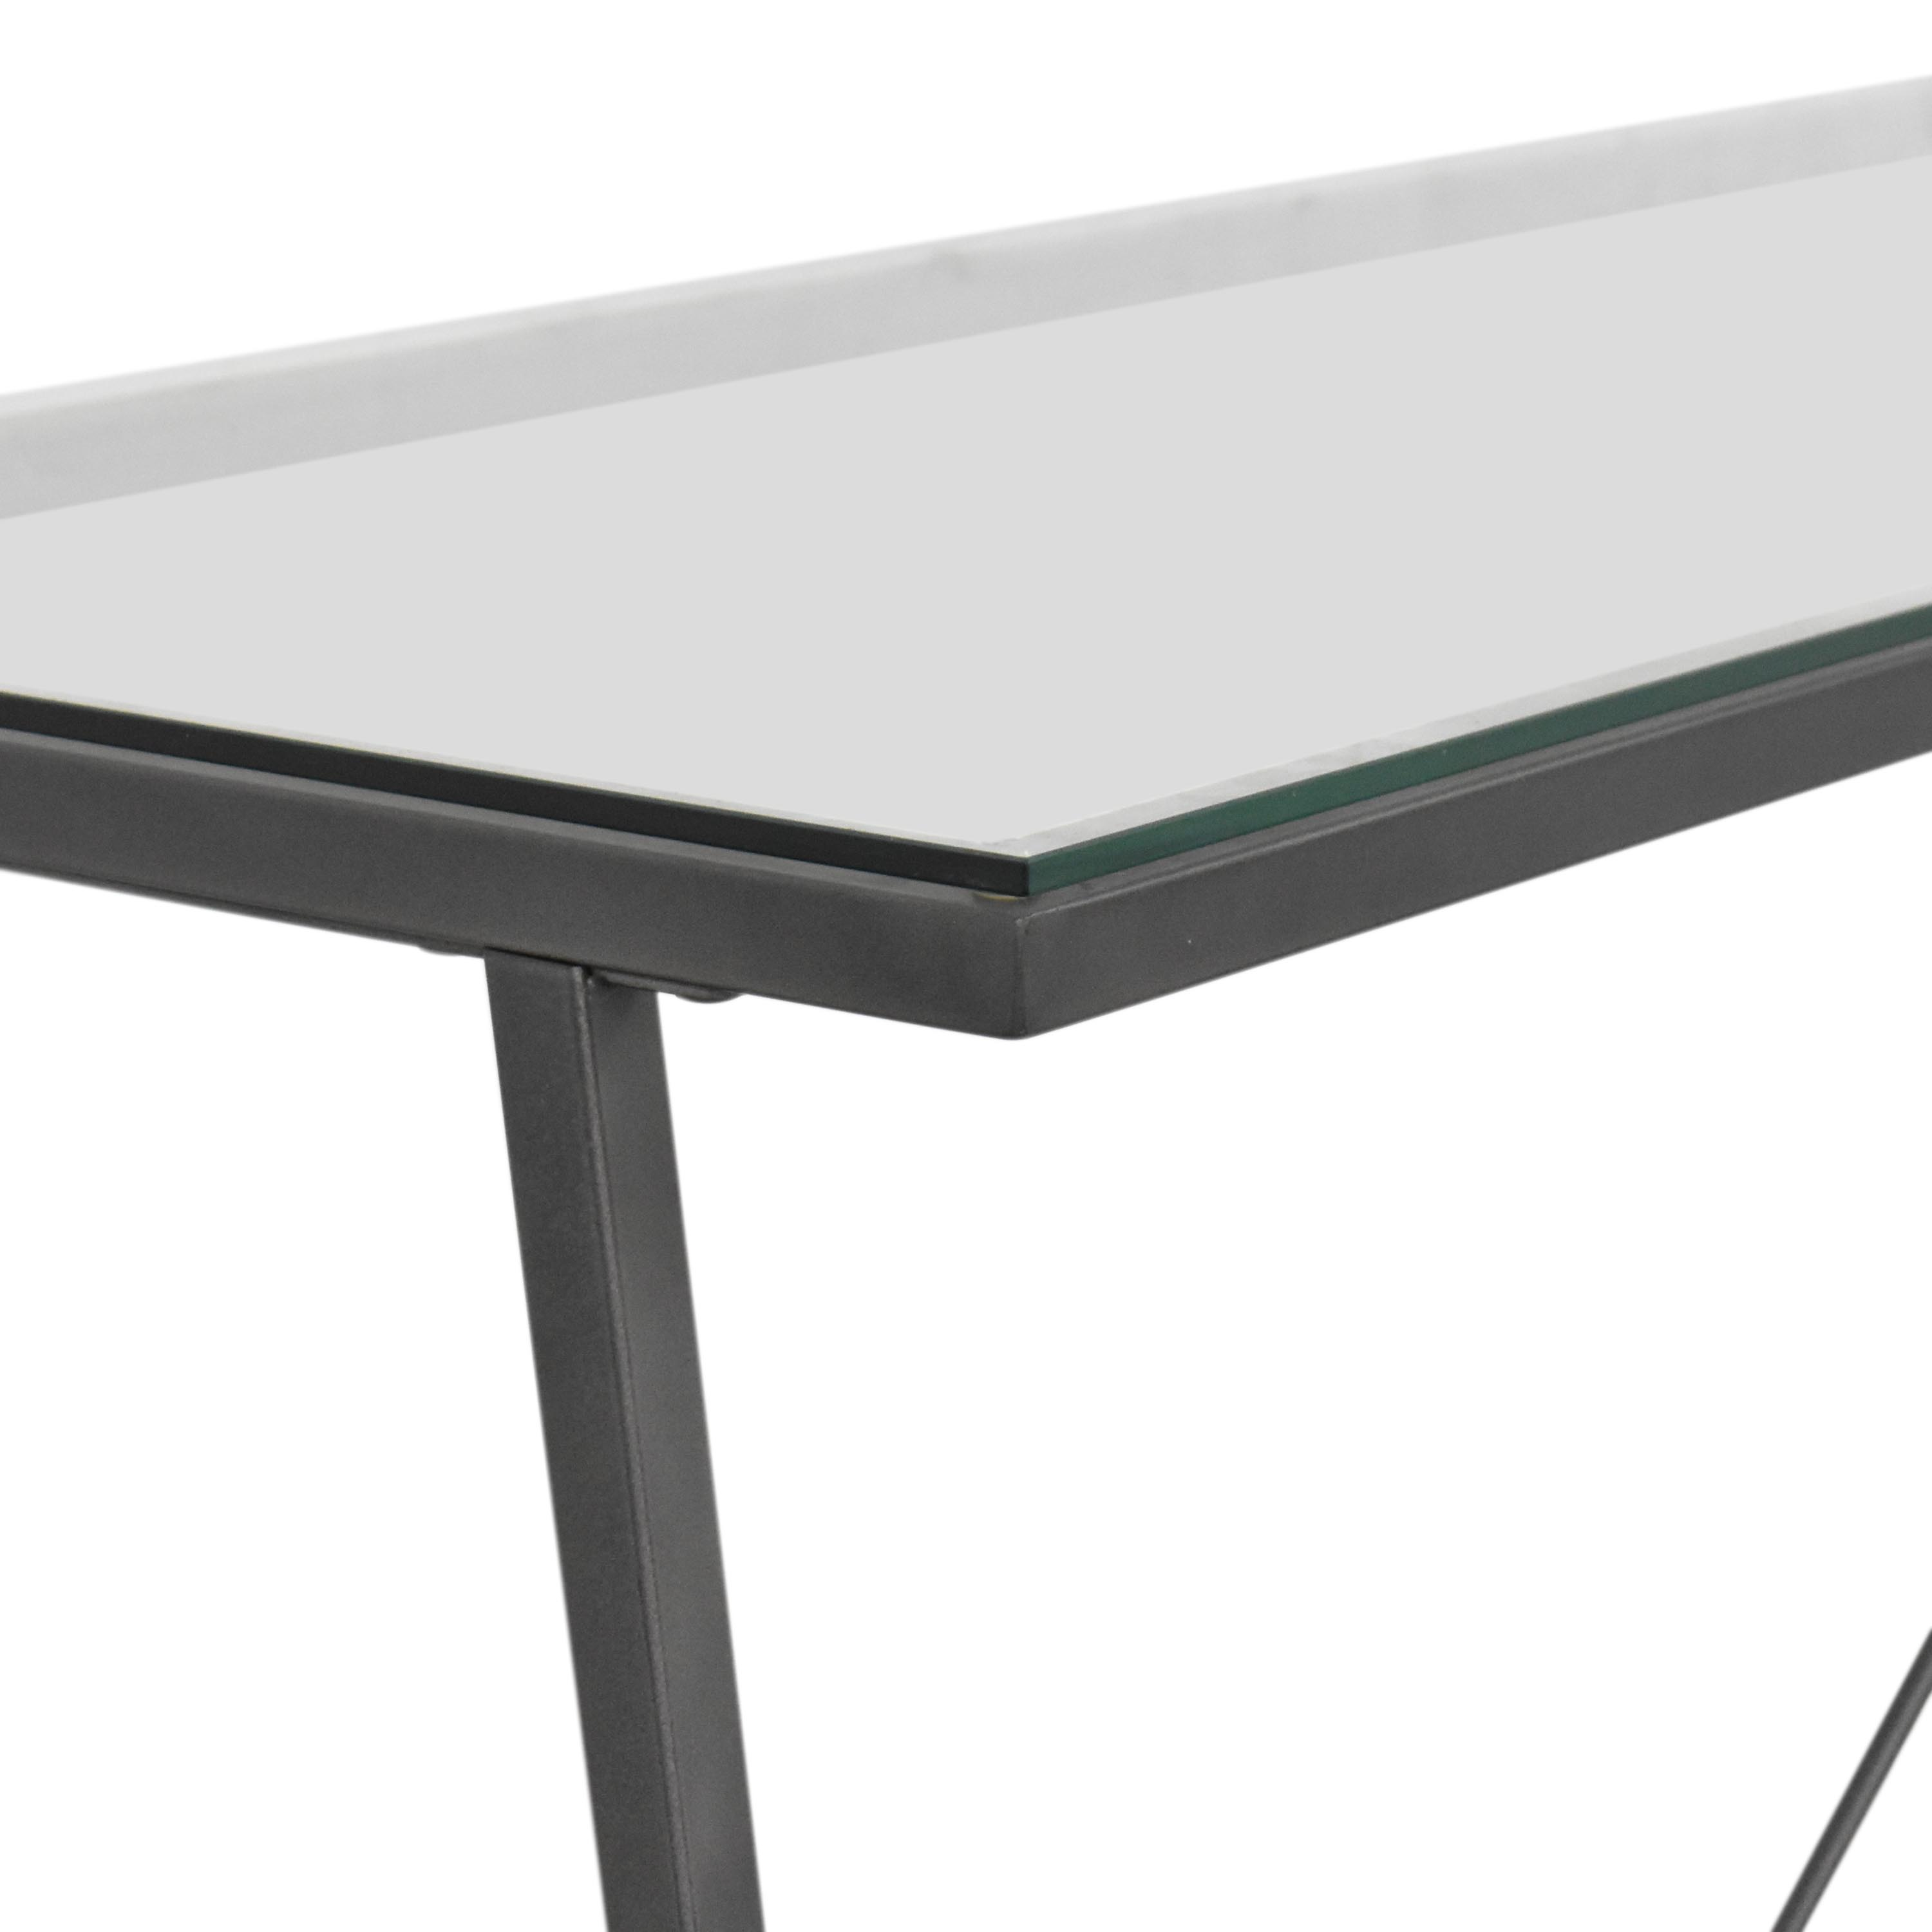 CB2 CB2 Dwight Console Table coupon